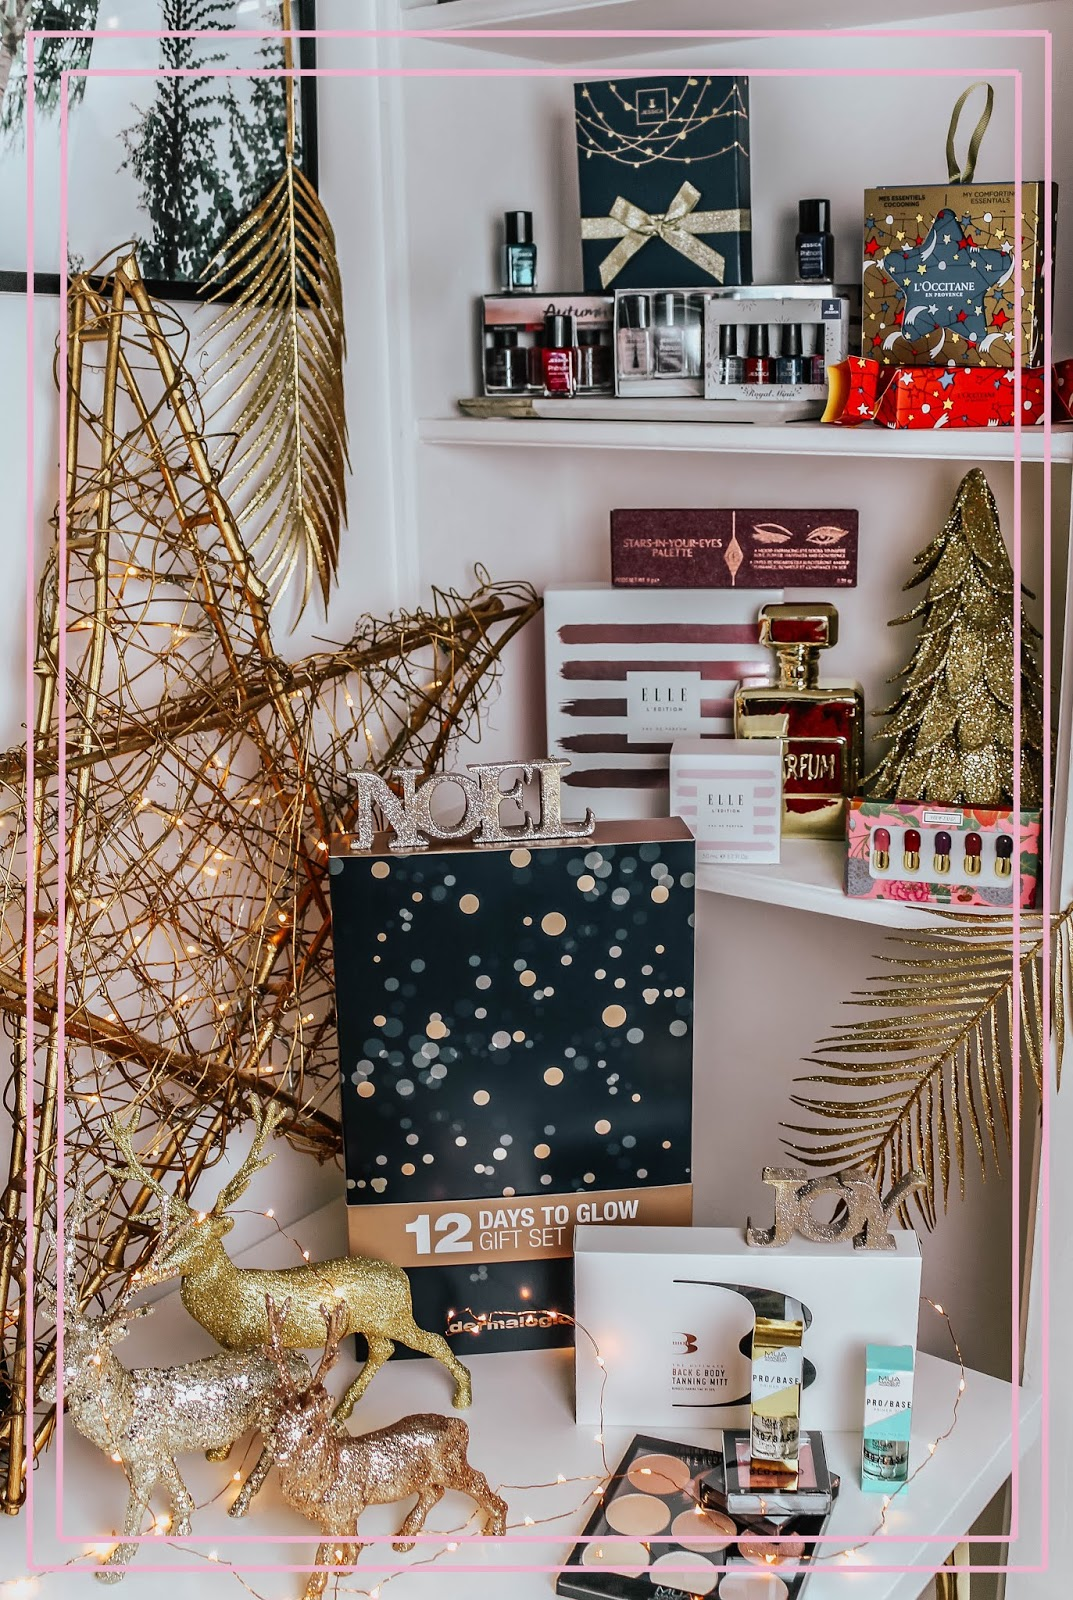 Beauty Small Presents Christmas Gift Guide